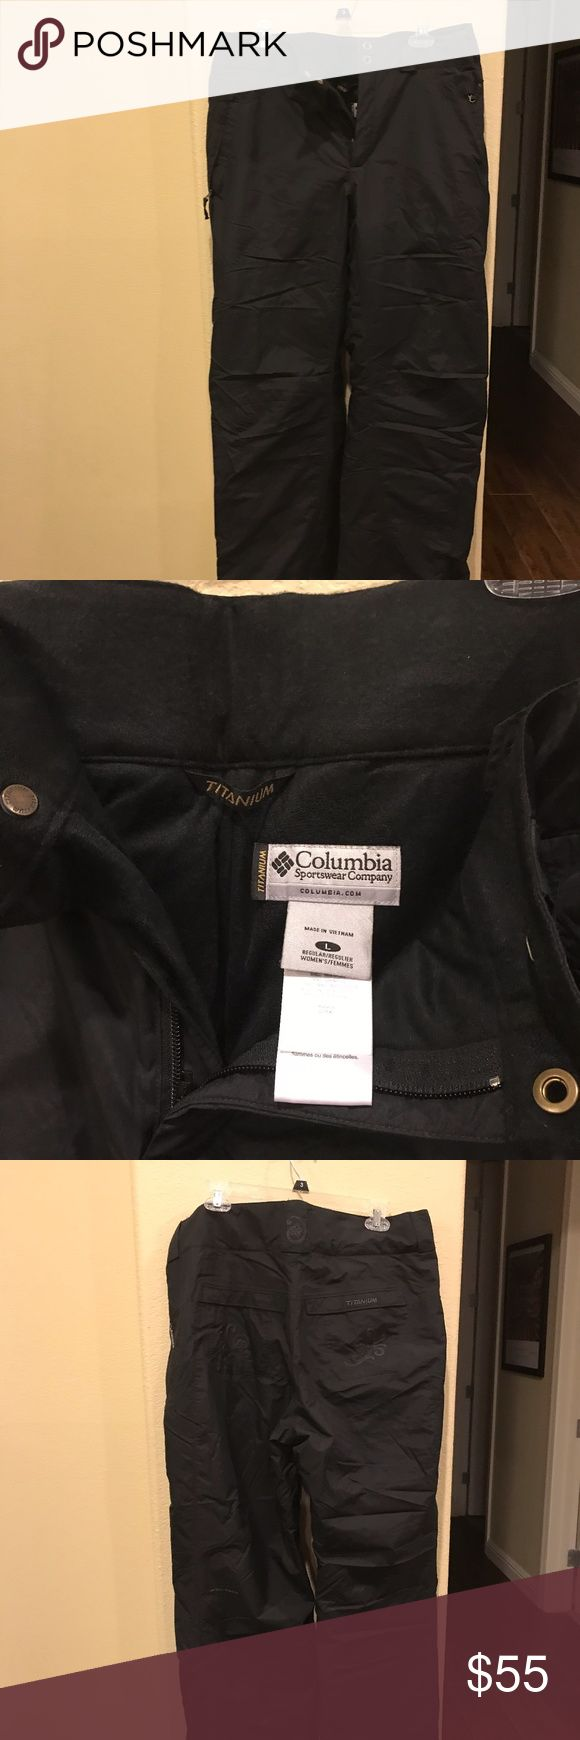 Columbia Sportswear Titanium Snow Pants In great condition! These are essential for your all of your winter activities! Get one of the highest quality outerwear brands at a steep discount. They are warm and waterproof! I wear smalls in everything but with layers and extra room I got these in a Large. Probably best for the medium wearer or a small depending on how many layers you have!  Goes great with the neon green jacket I have as well! Columbia Pants